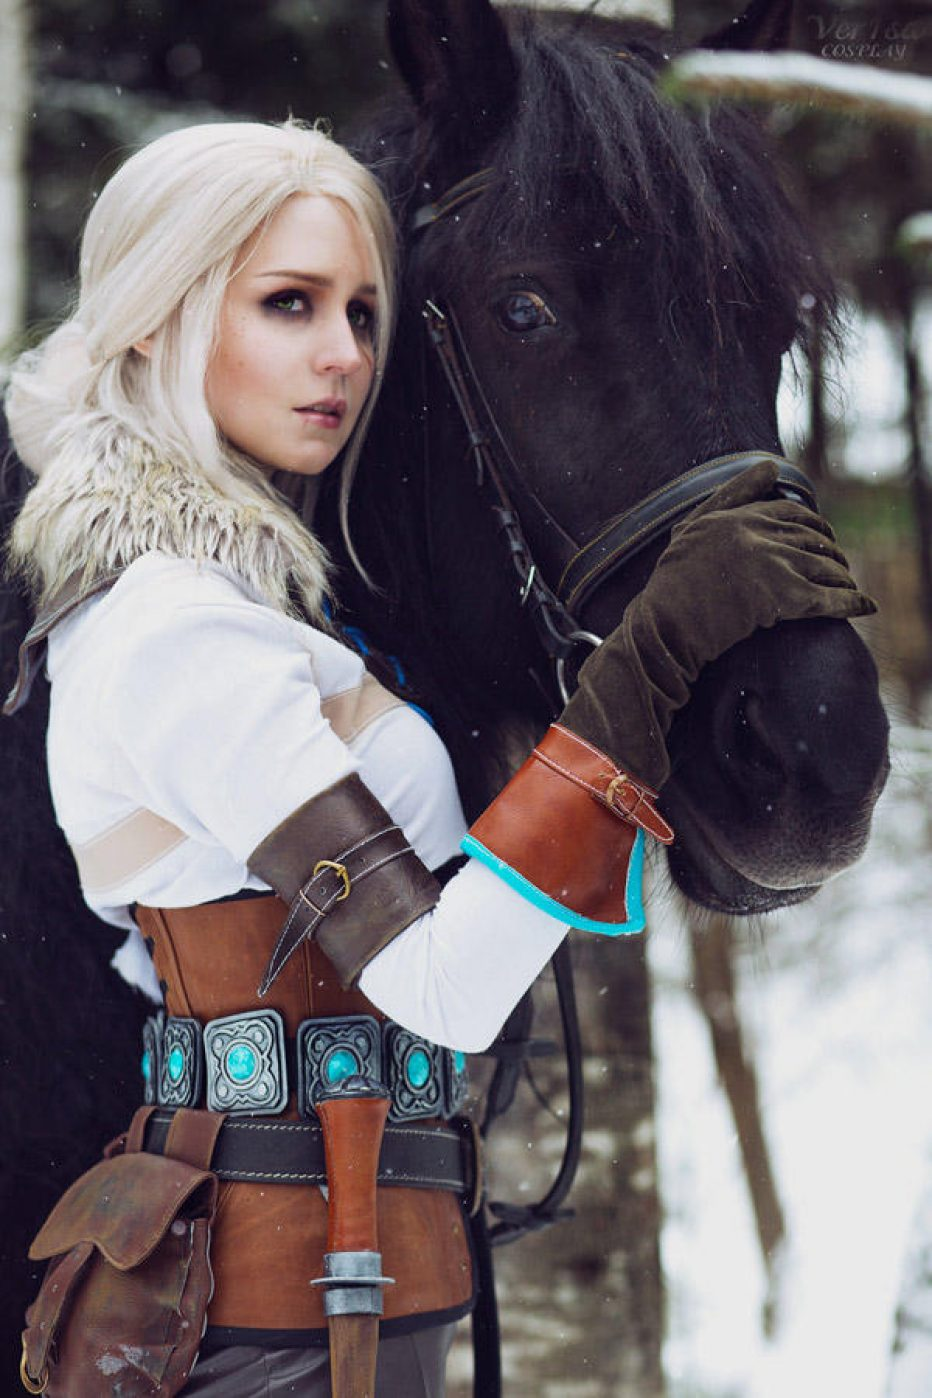 The-Witcher-3-Ciri-Cosplay-Gamers-Heroes-3.jpg